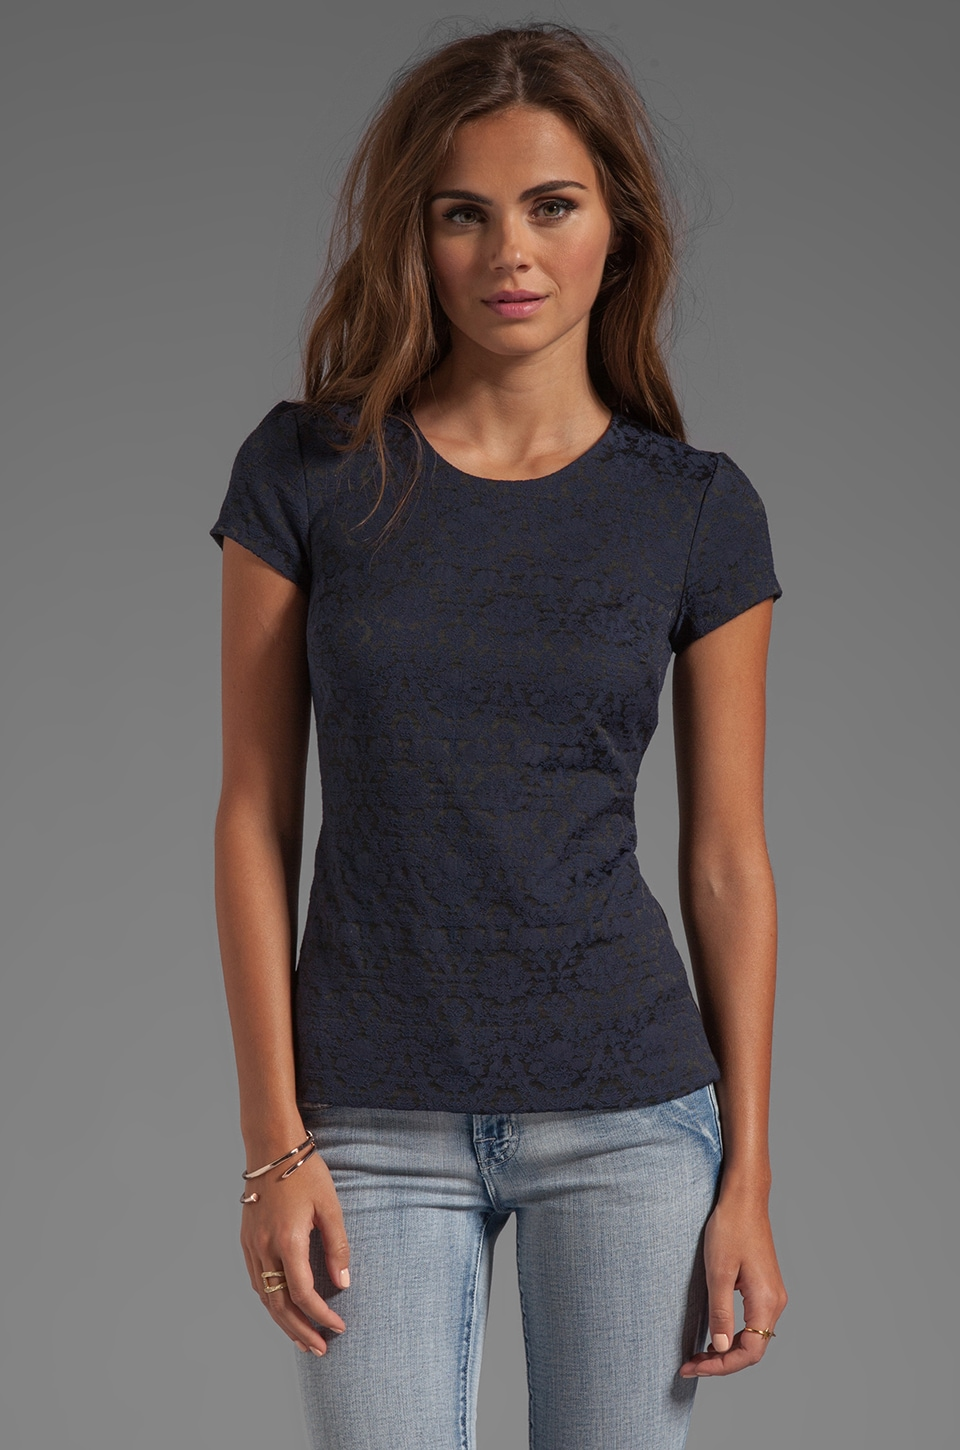 Bailey 44 Chaucer Baroque Top in Navy